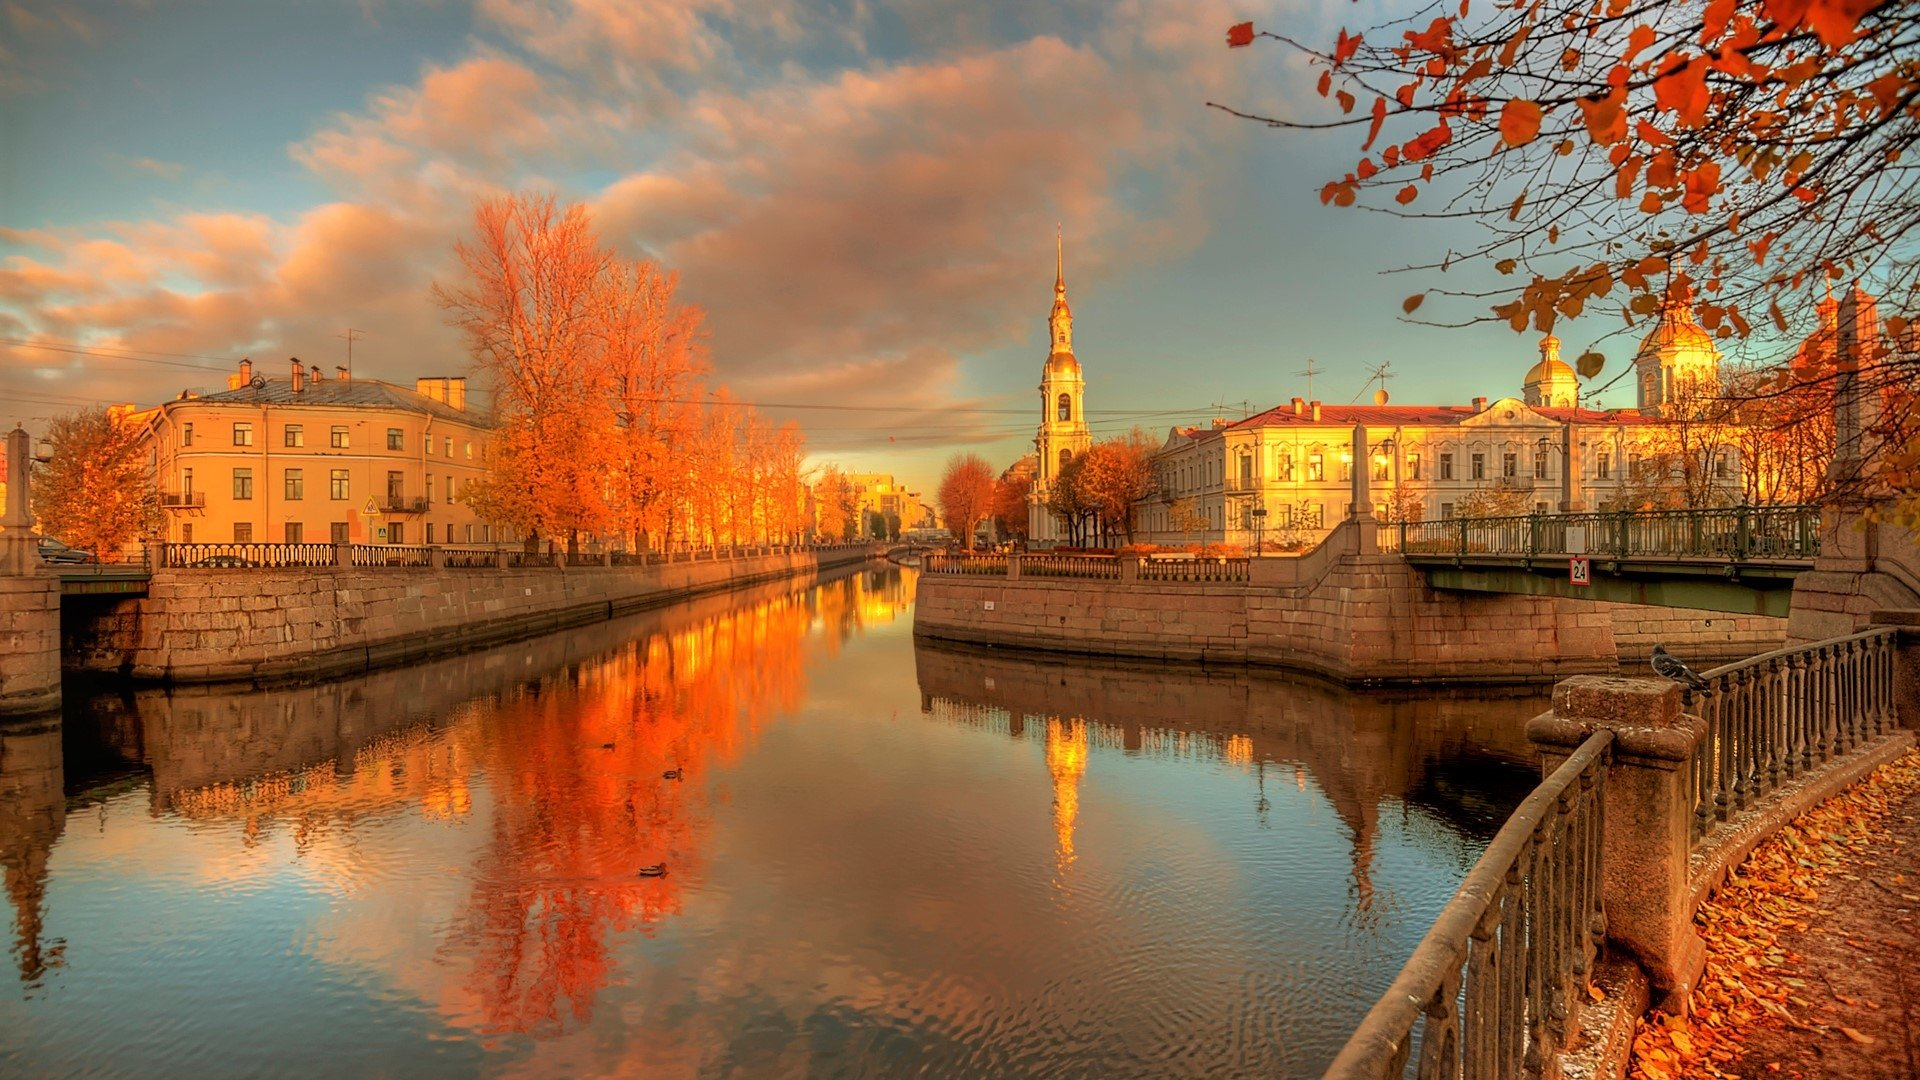 Iphone 6 Plus Fall Wallpaper Autumn In St Petersburg Russia Full Hd Wallpaper And